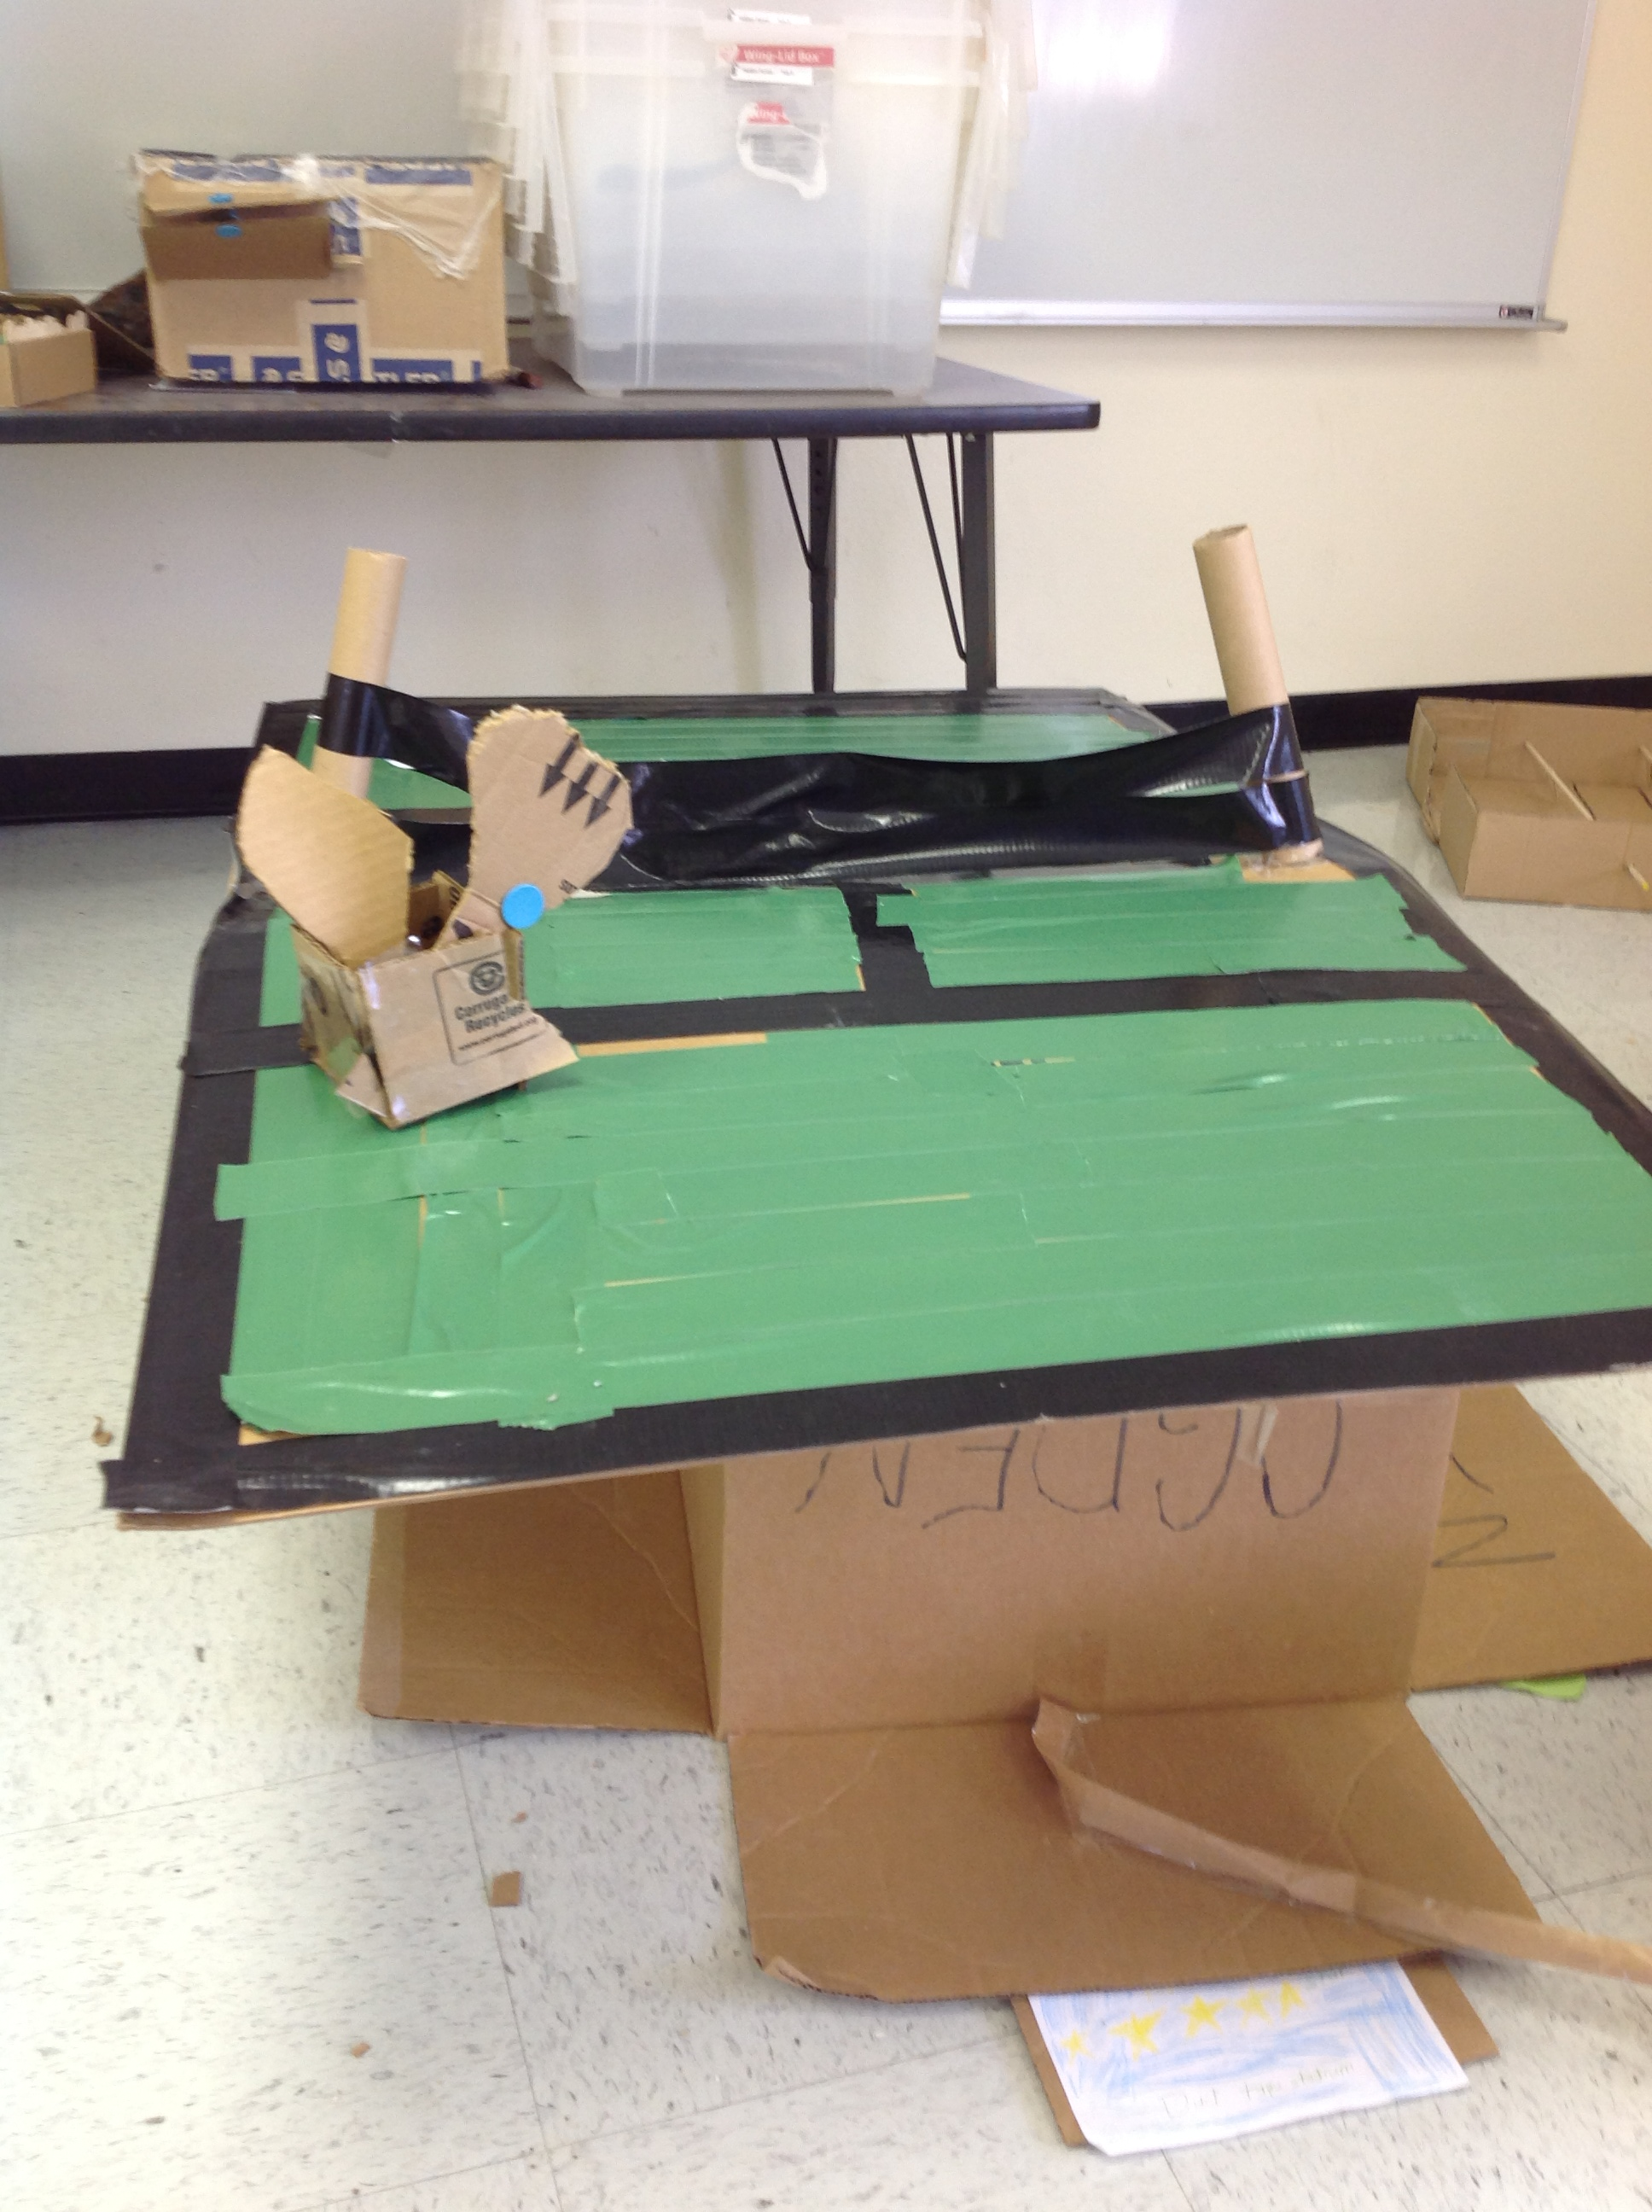 Two Students Worked Together To Make This Ping Pong Table (with The Help Of  A